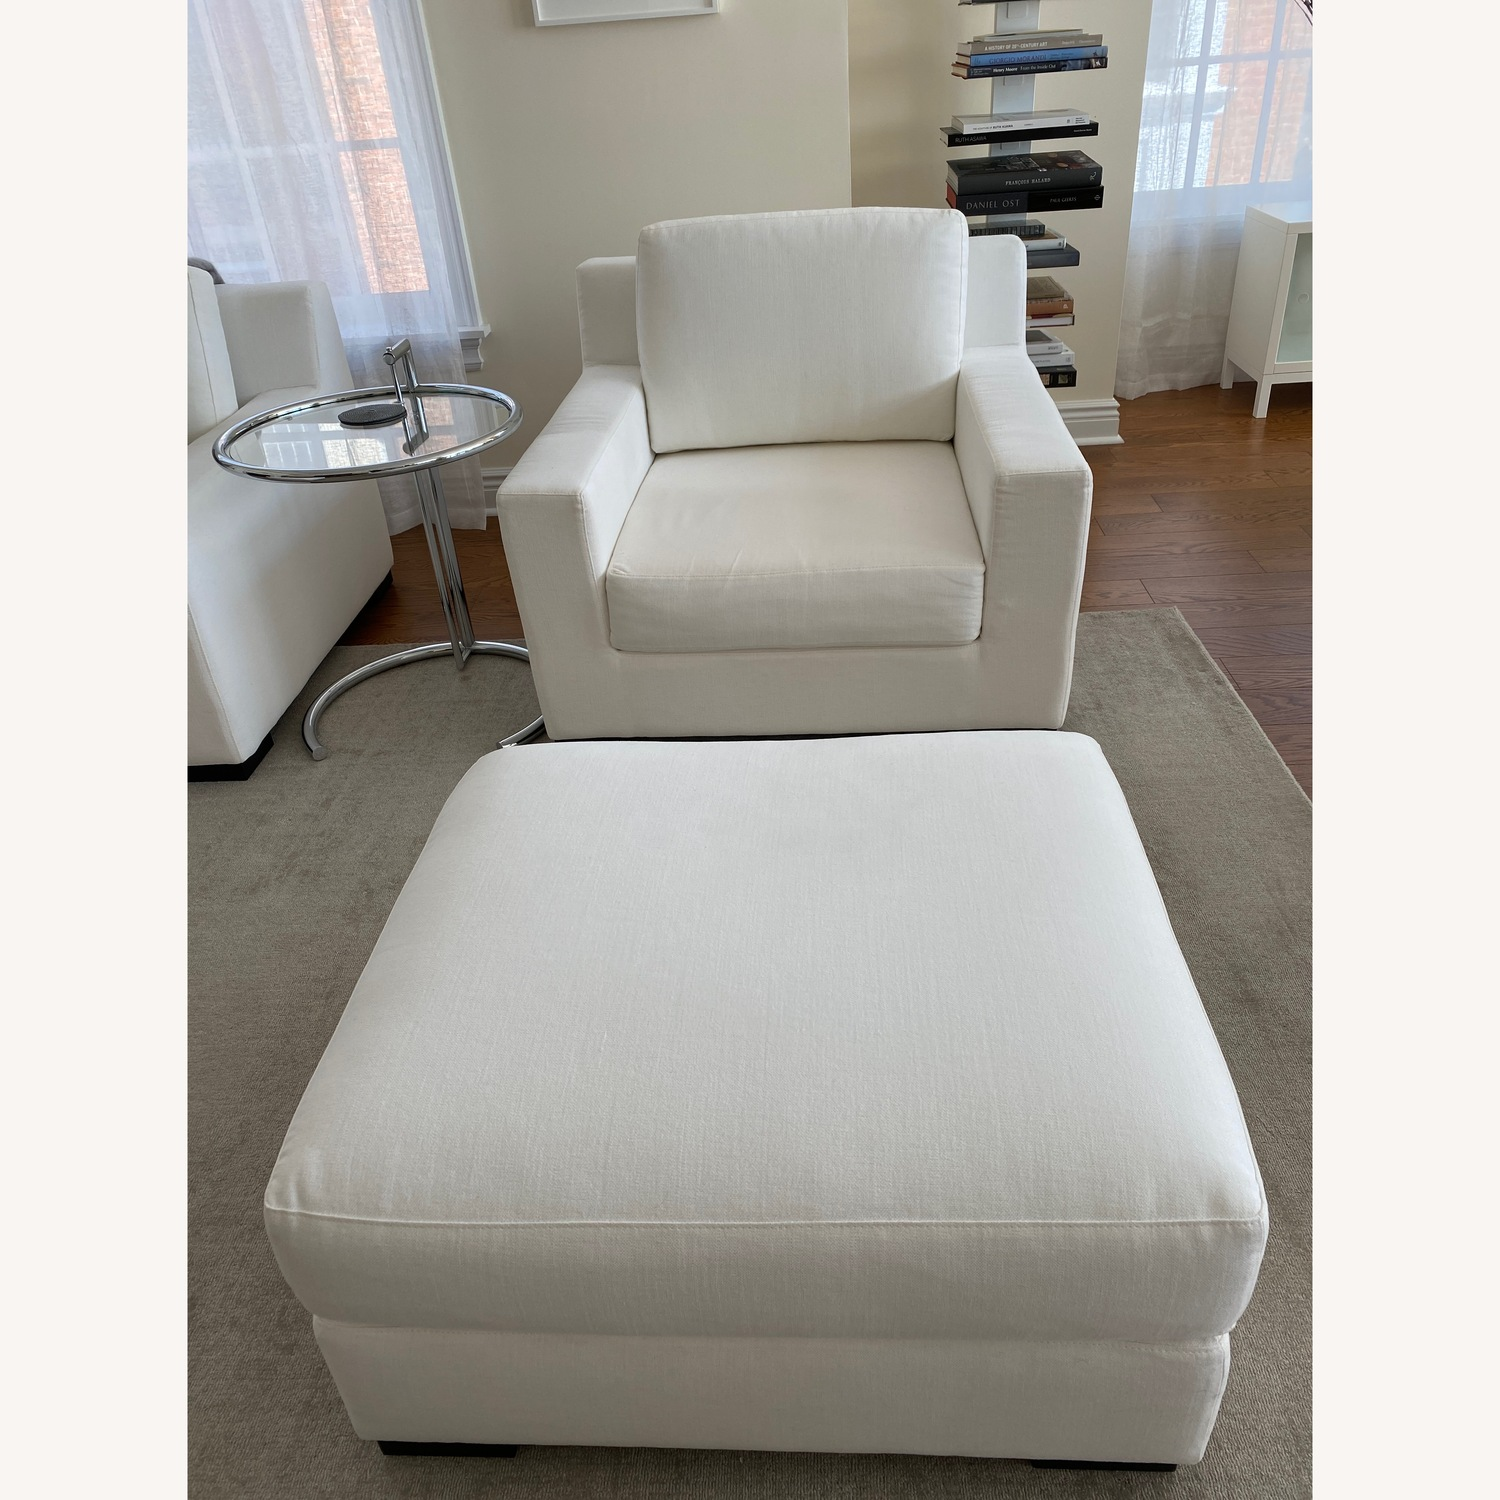 Restoration Hardware Modena Chairs with Ottomans Set - image-2